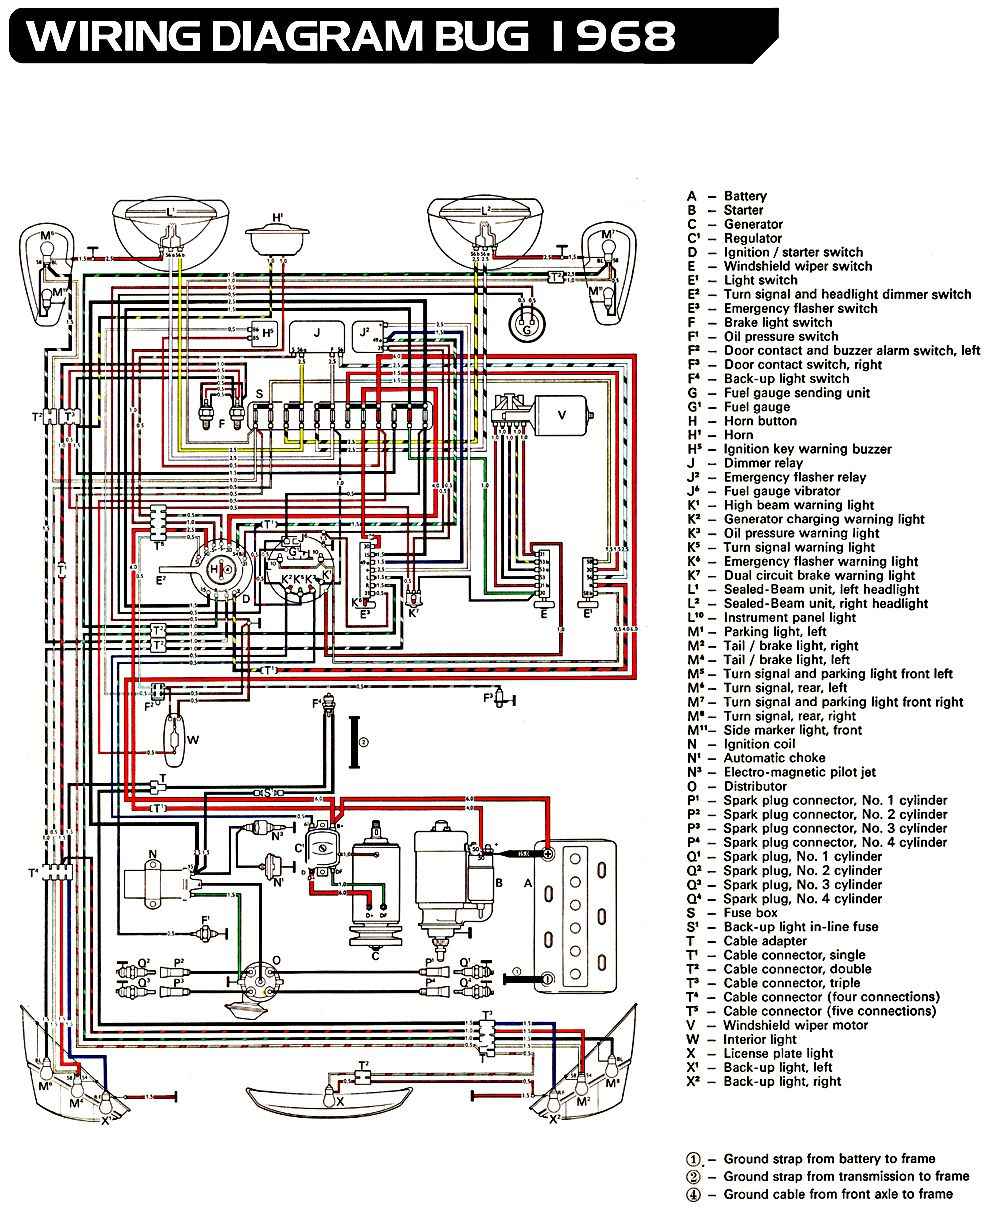 vw bug ignition wiring diagram - 73 vw wiring diagram free ... volkswagen bug wiring harness for 72 1971 volkswagen bug wiring diagram